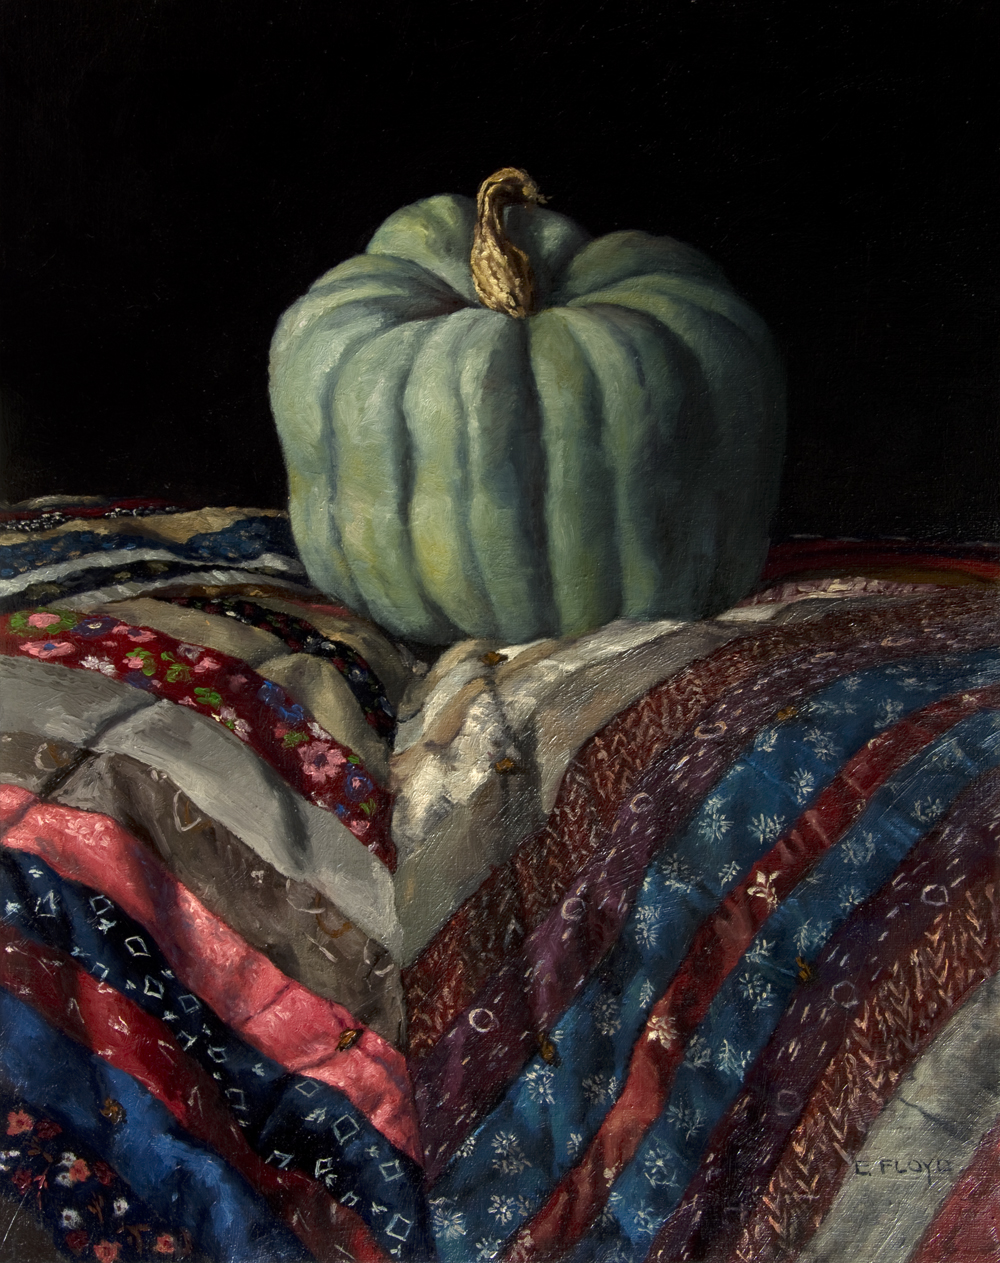 Hubbard Pumpkin by Elizabeth Floyd, oil on linen, 20 x 16 inches